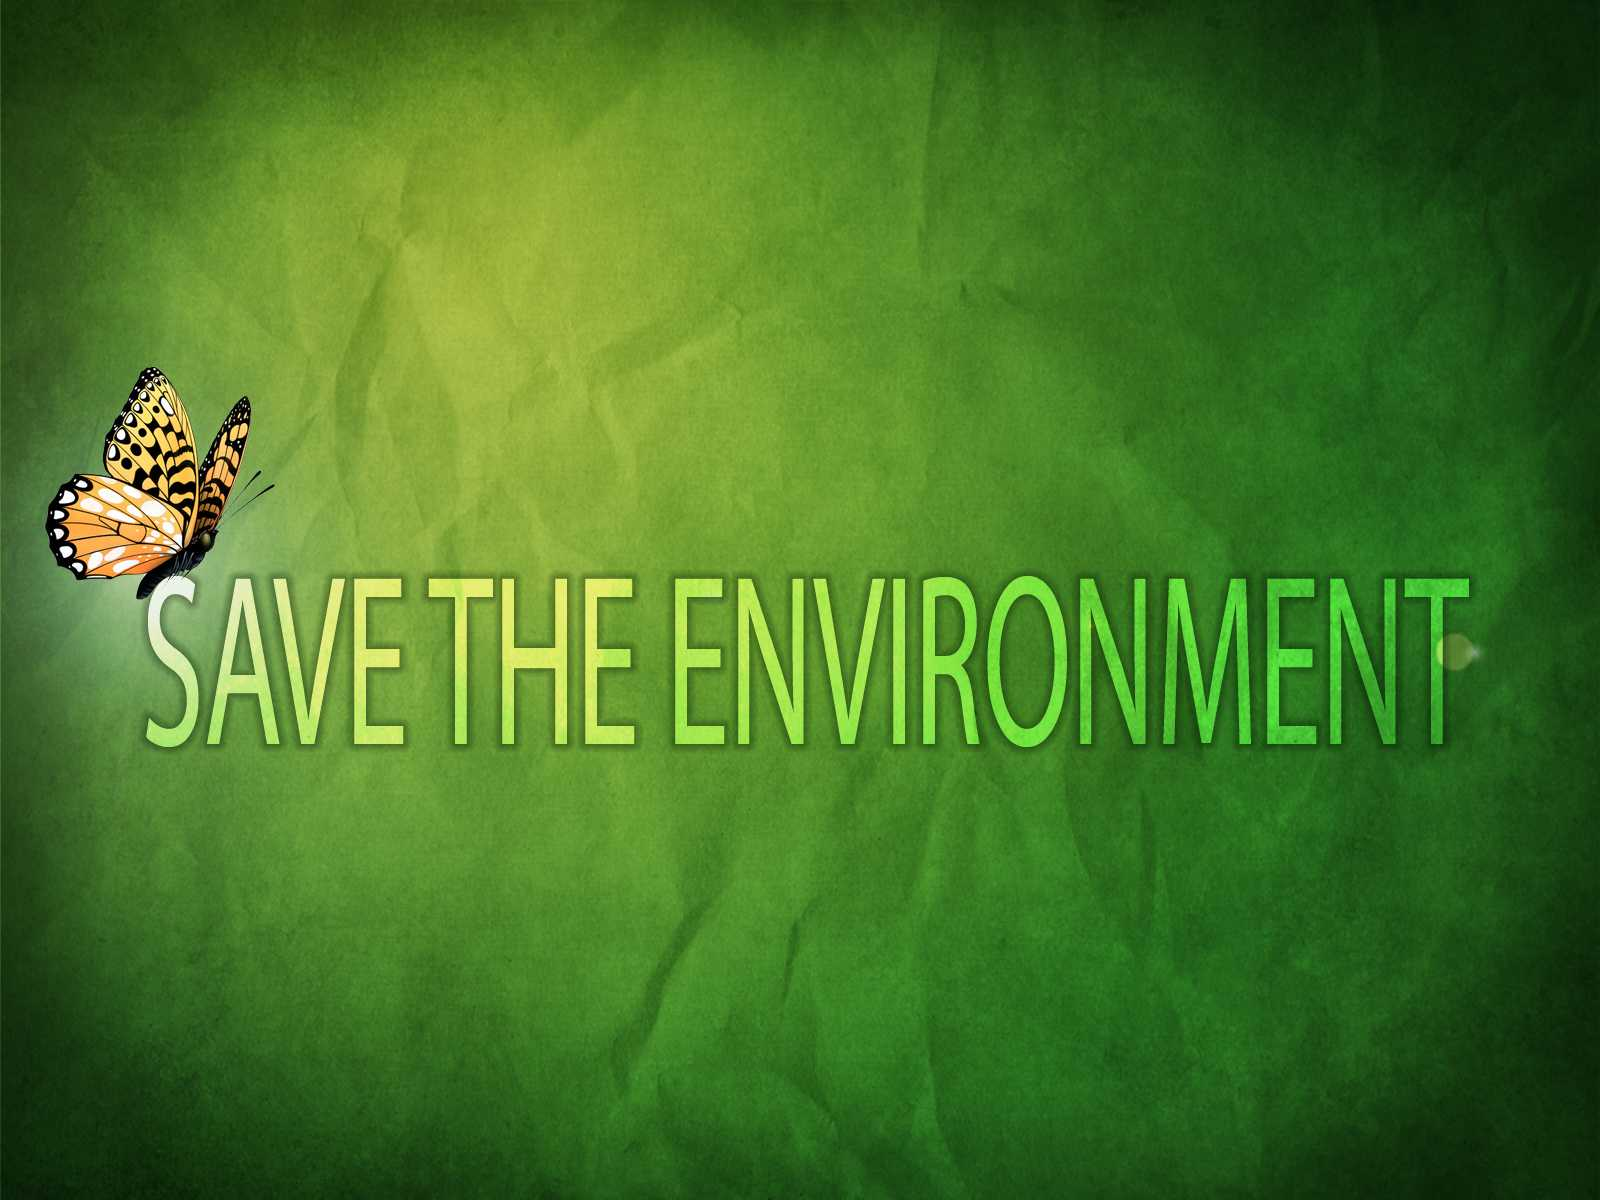 we must fit out technology to ecology